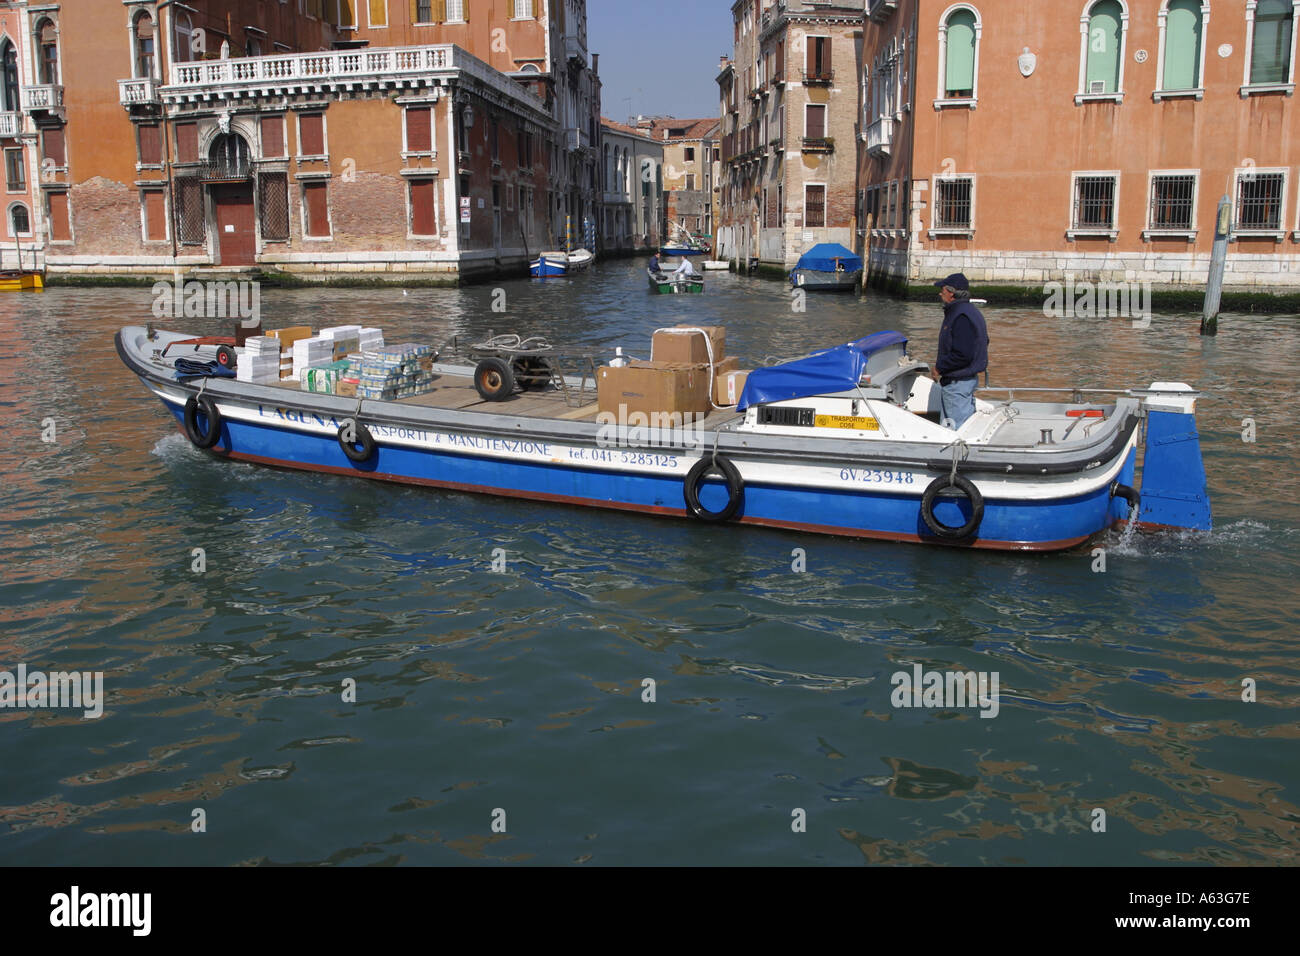 Topo barge product delivery service on the Grand Canal Venice Italy - Stock Image